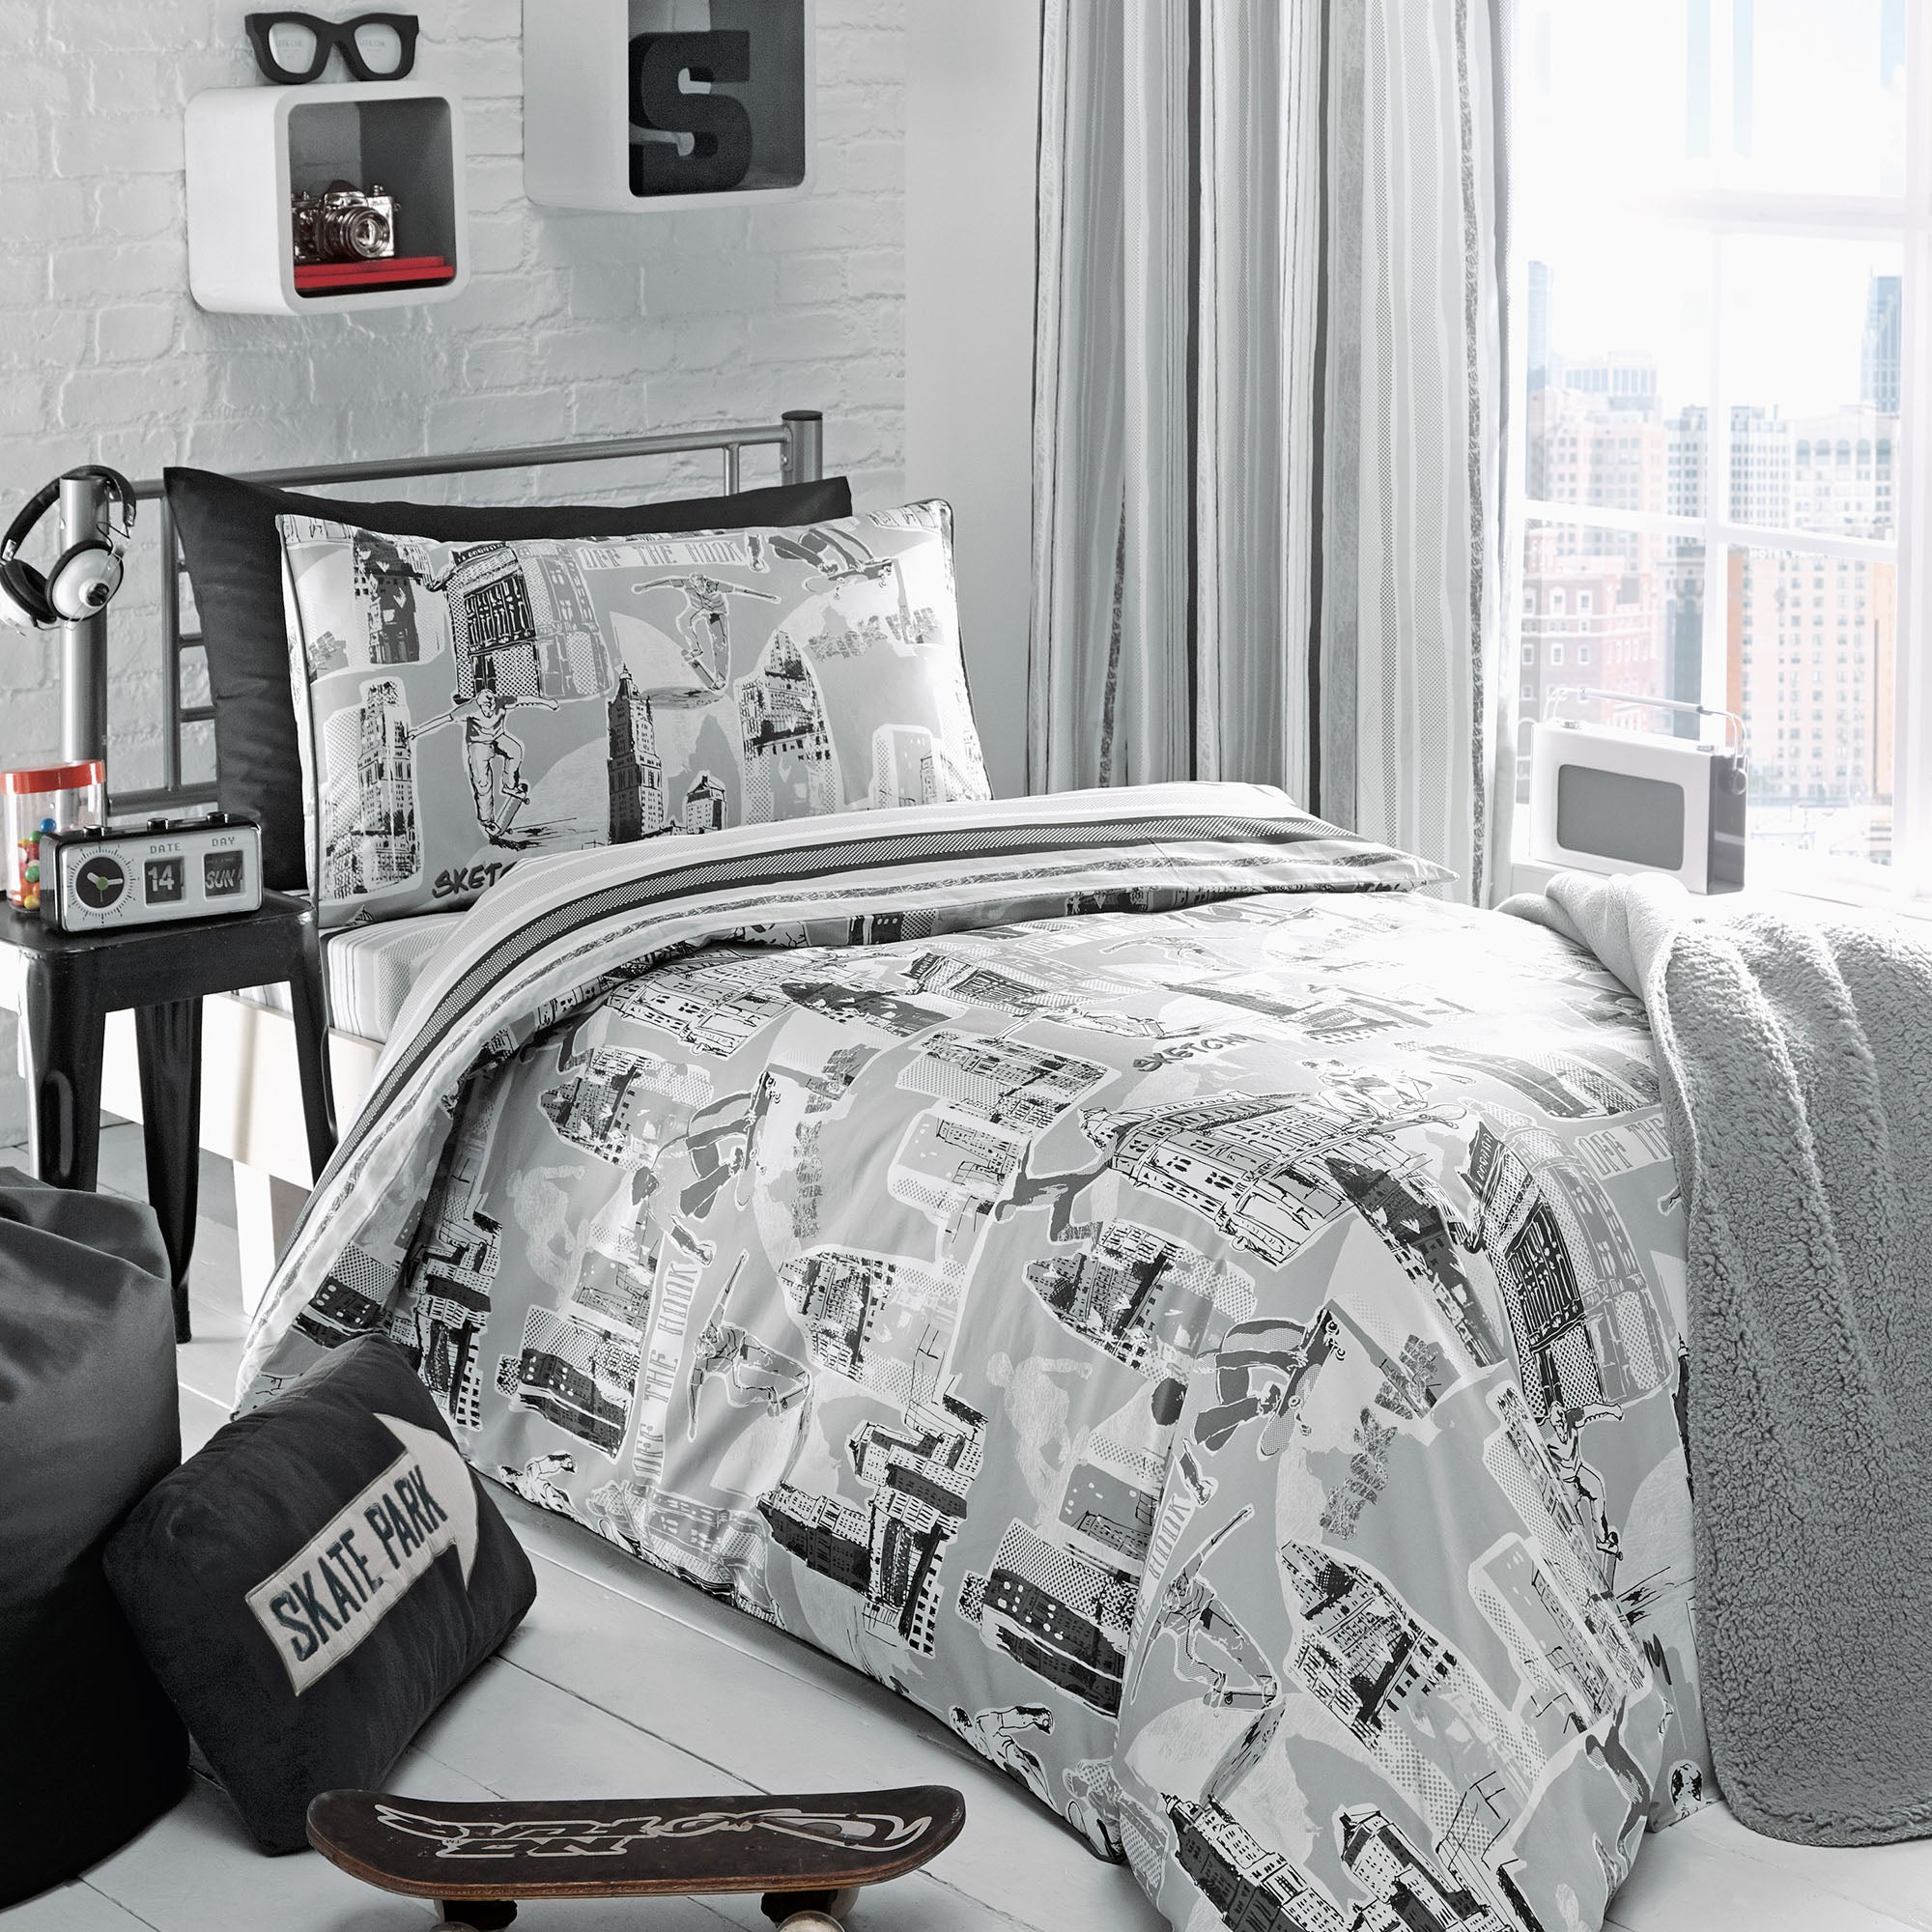 Urban Skater Bed Linen Collection